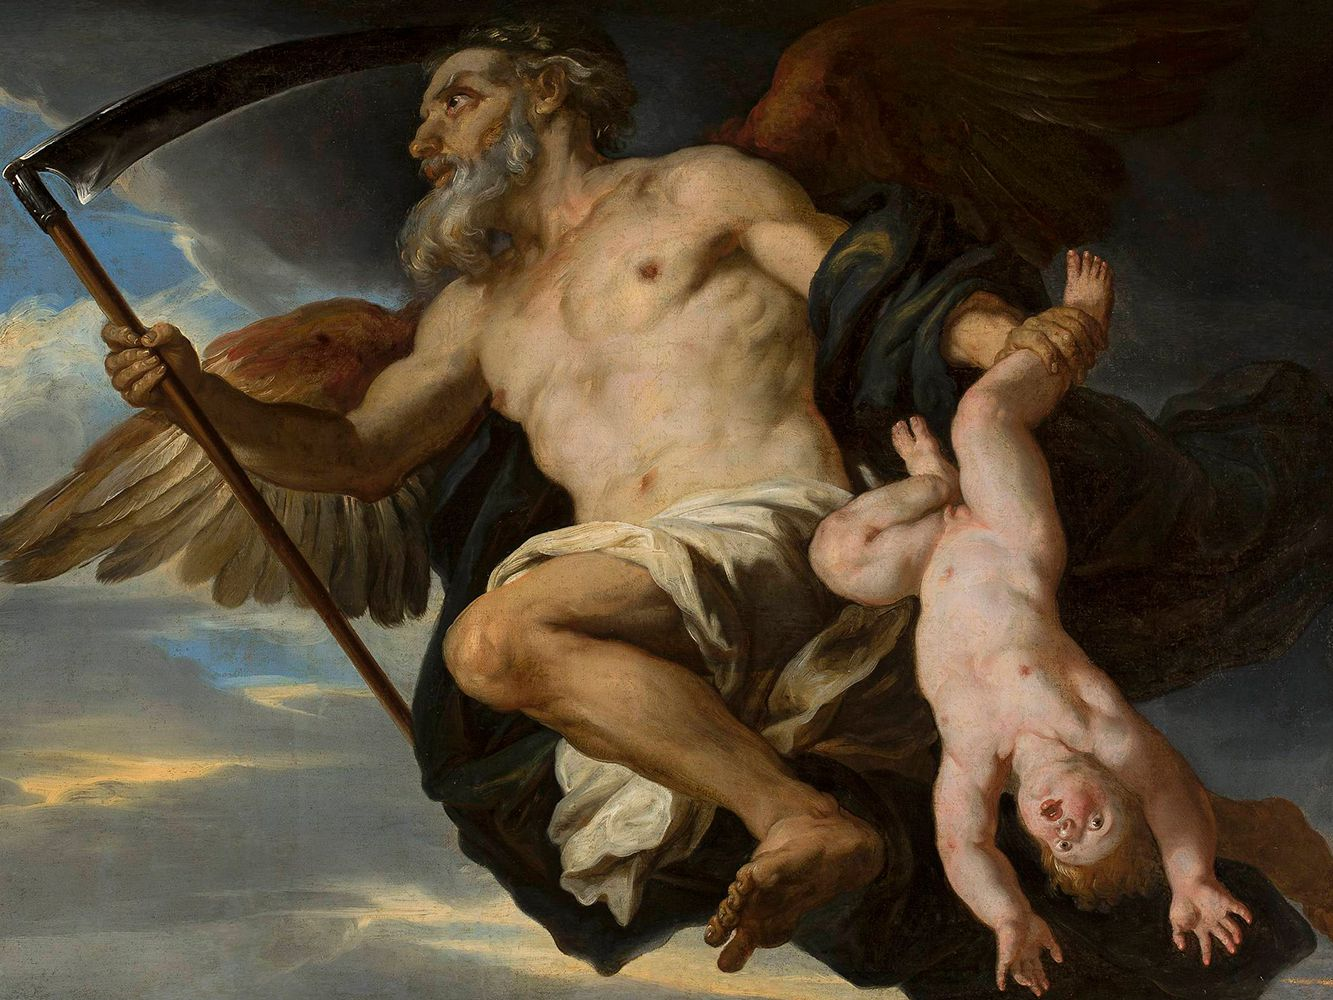 Kronos Mythology: Learn More About the Greek God